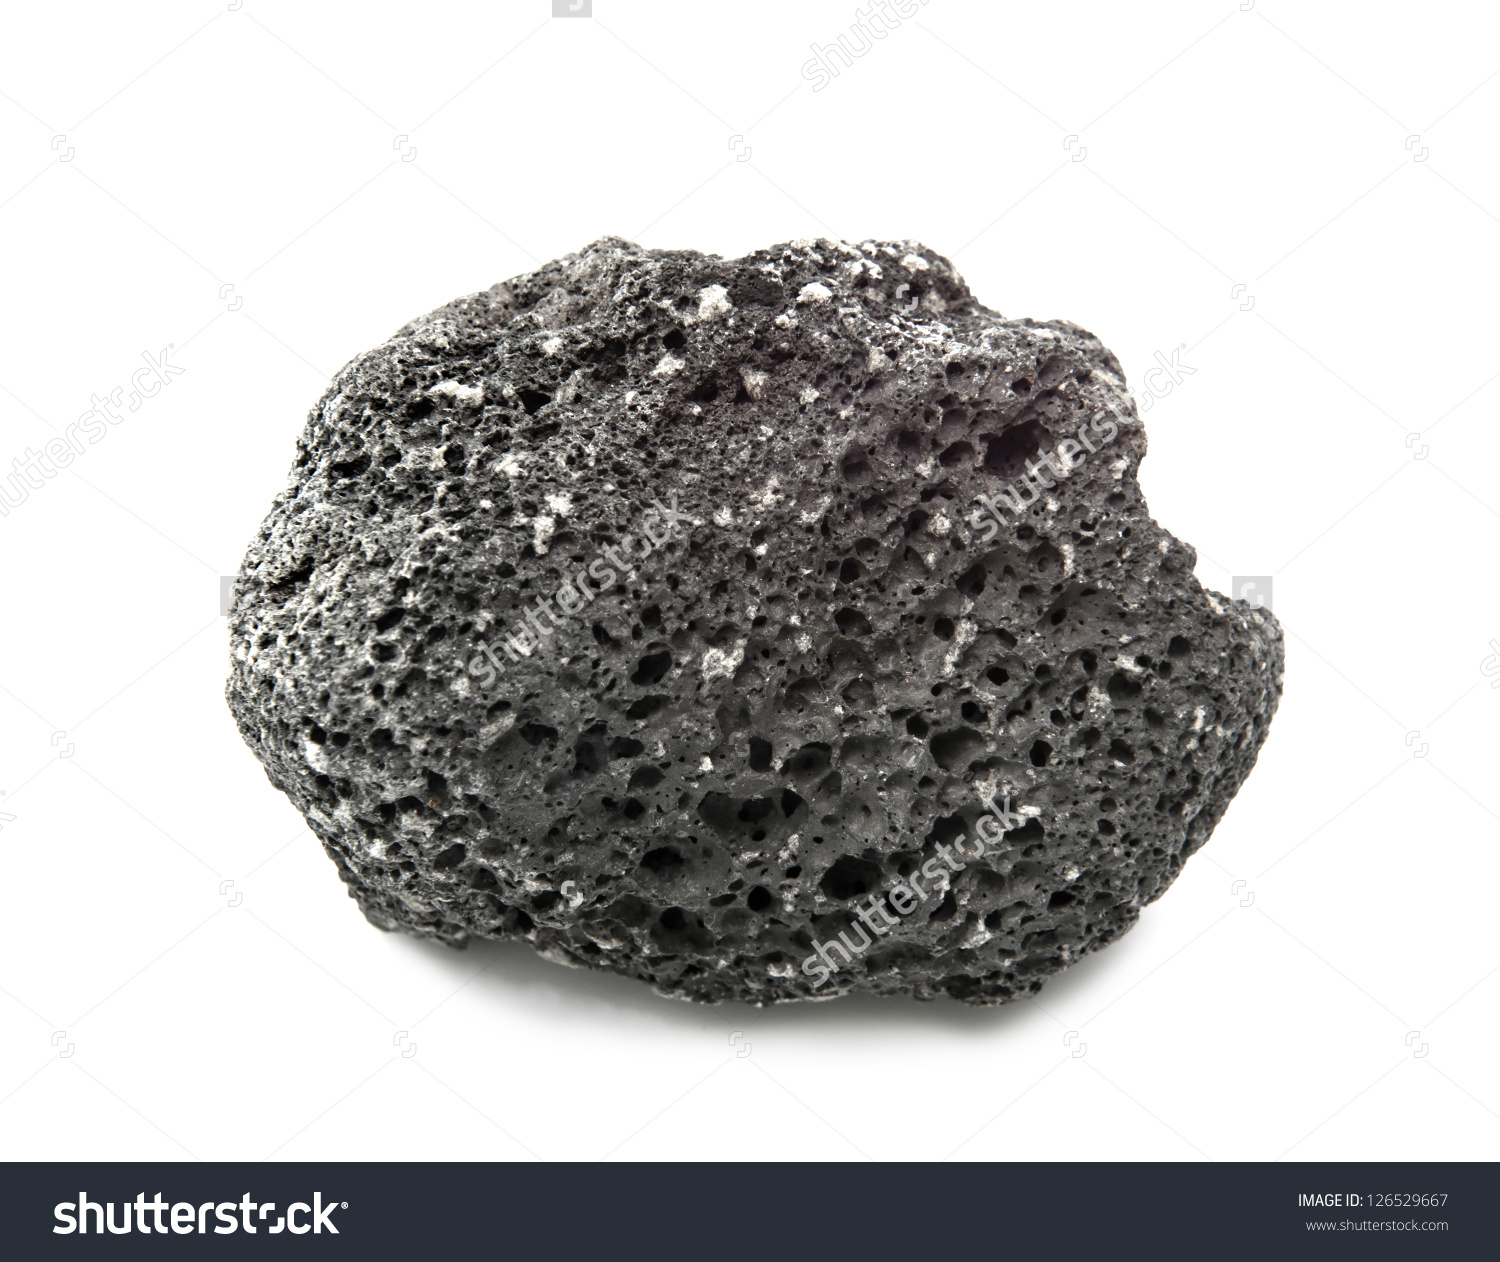 Scoria Volcanic Rock Isolated On White Stock Photo 126529667.